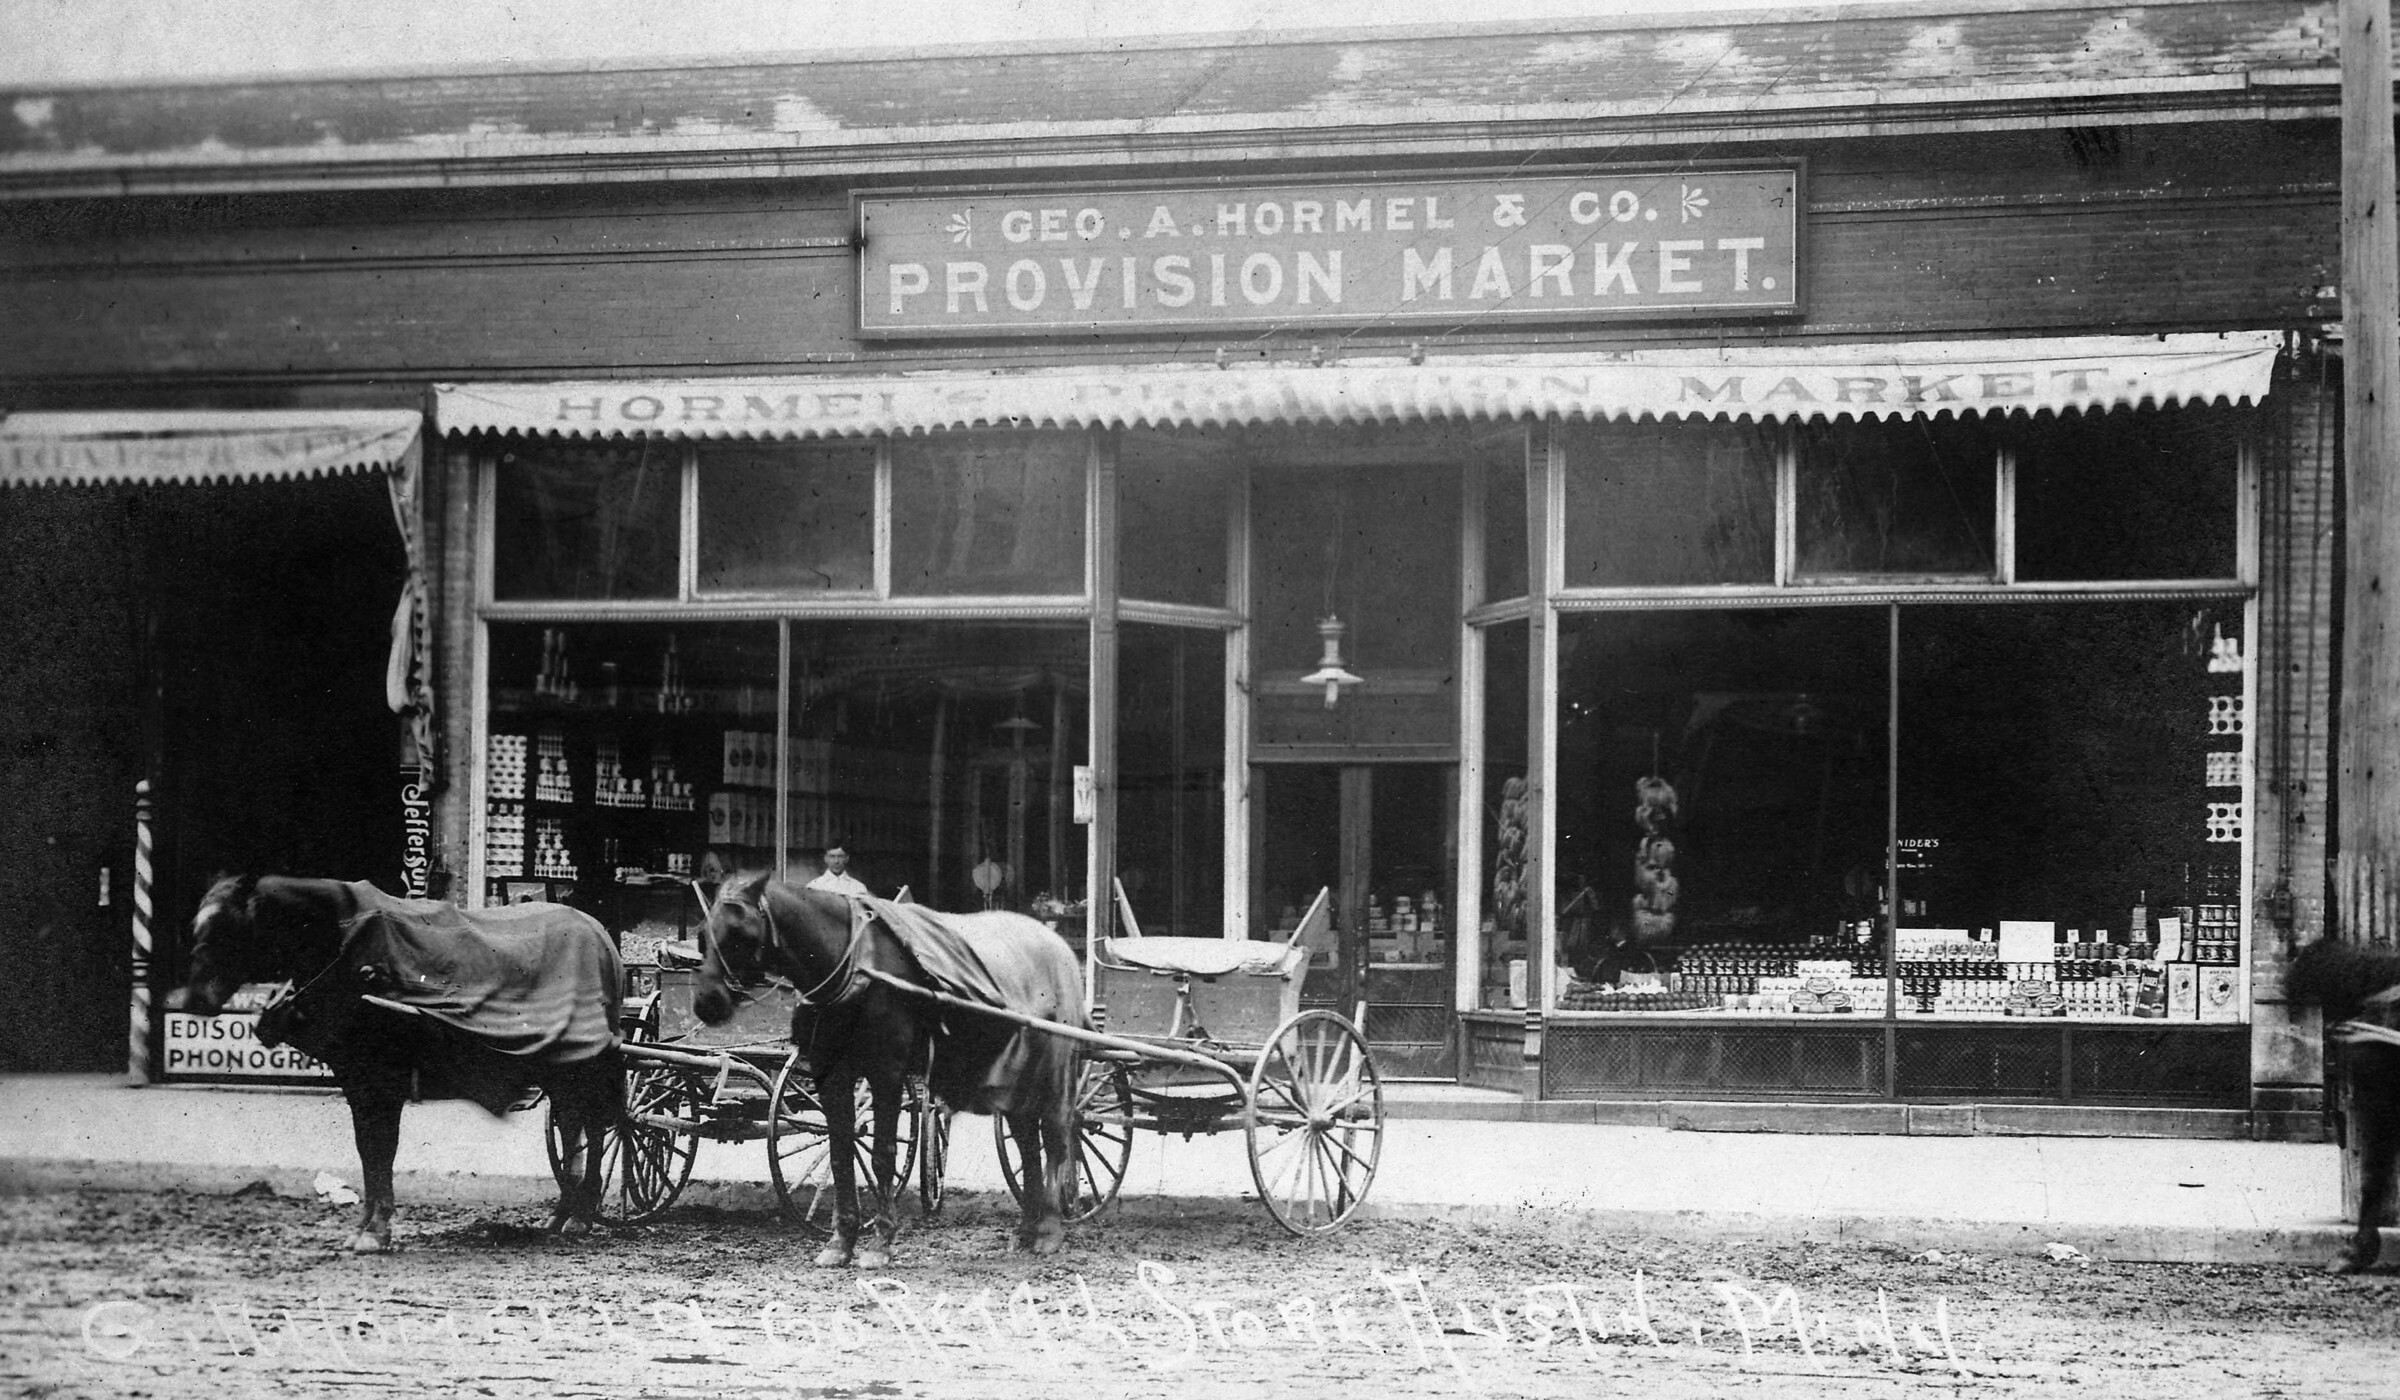 Provisions Market